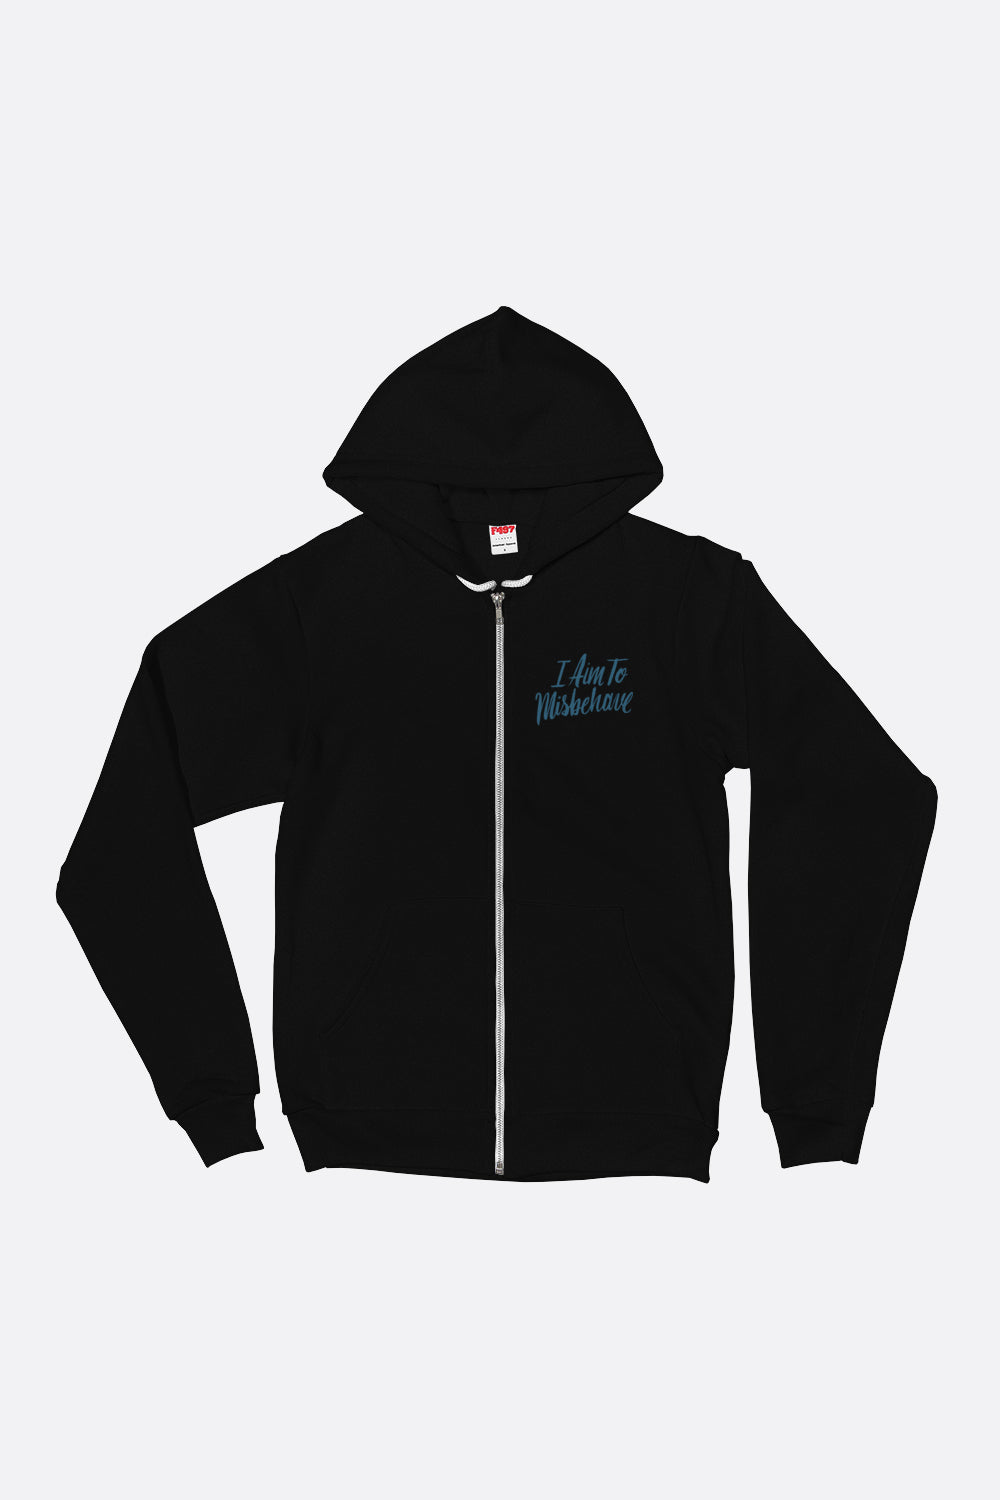 Aim to Misbehave Zip Up Hoodie